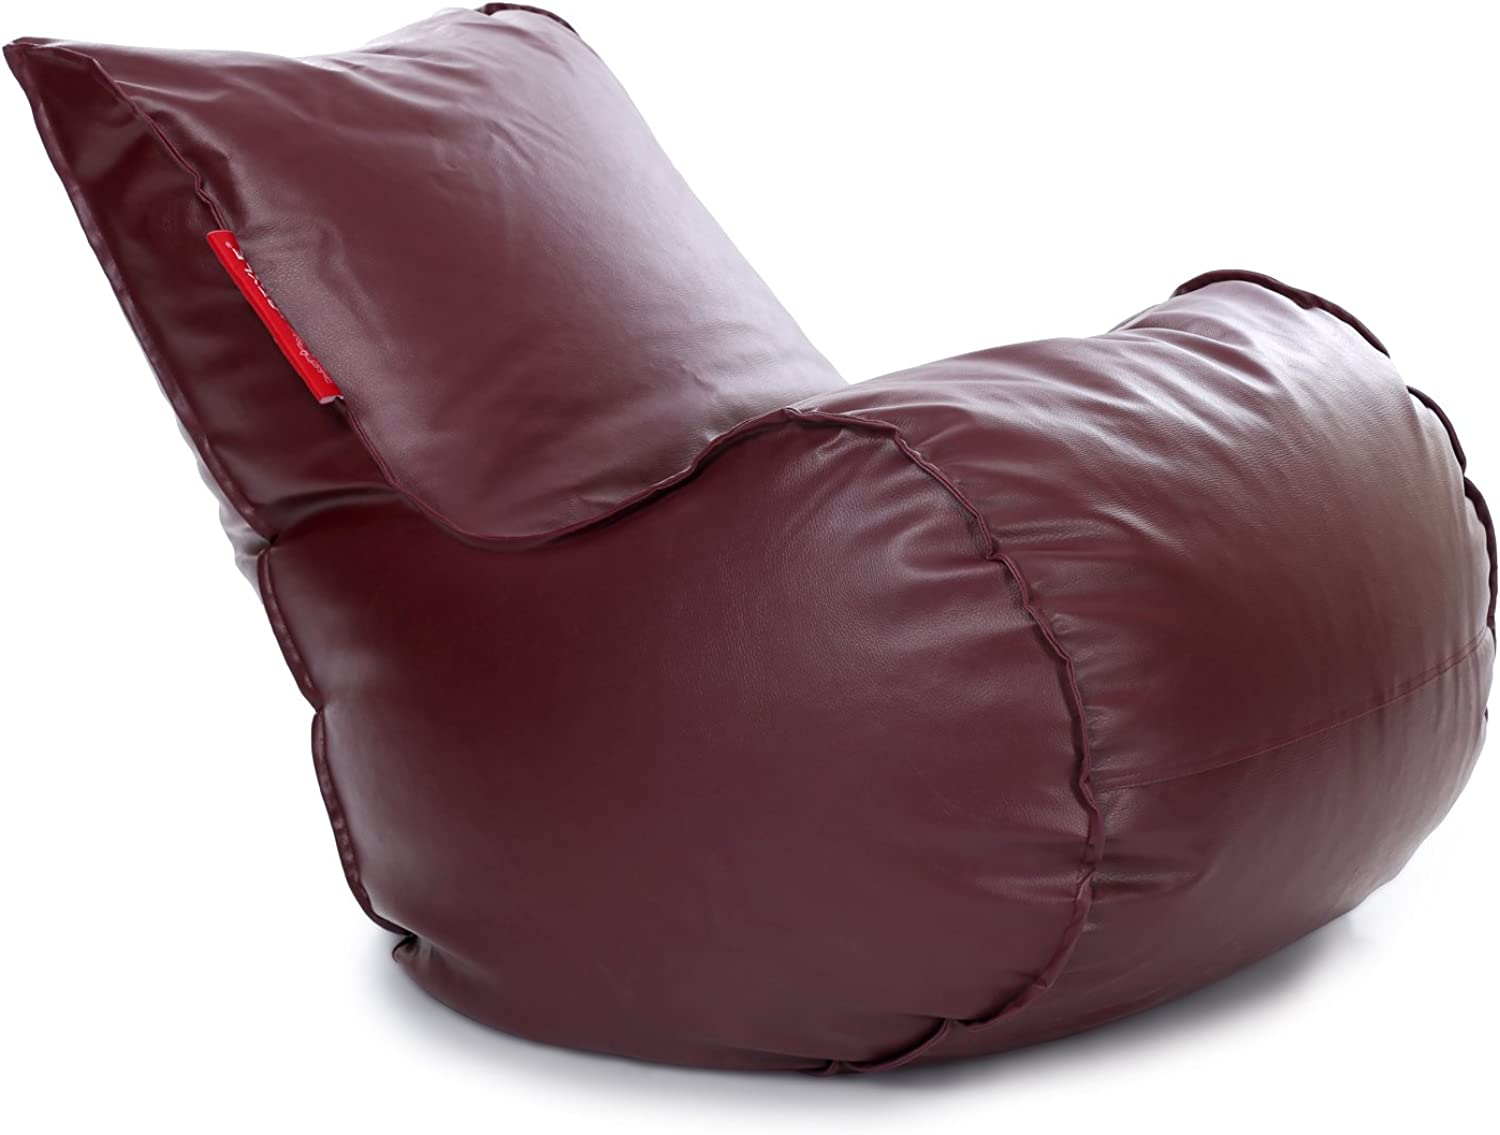 Style Homez Mambo Bean Bag XL Size Maroon Cover Only